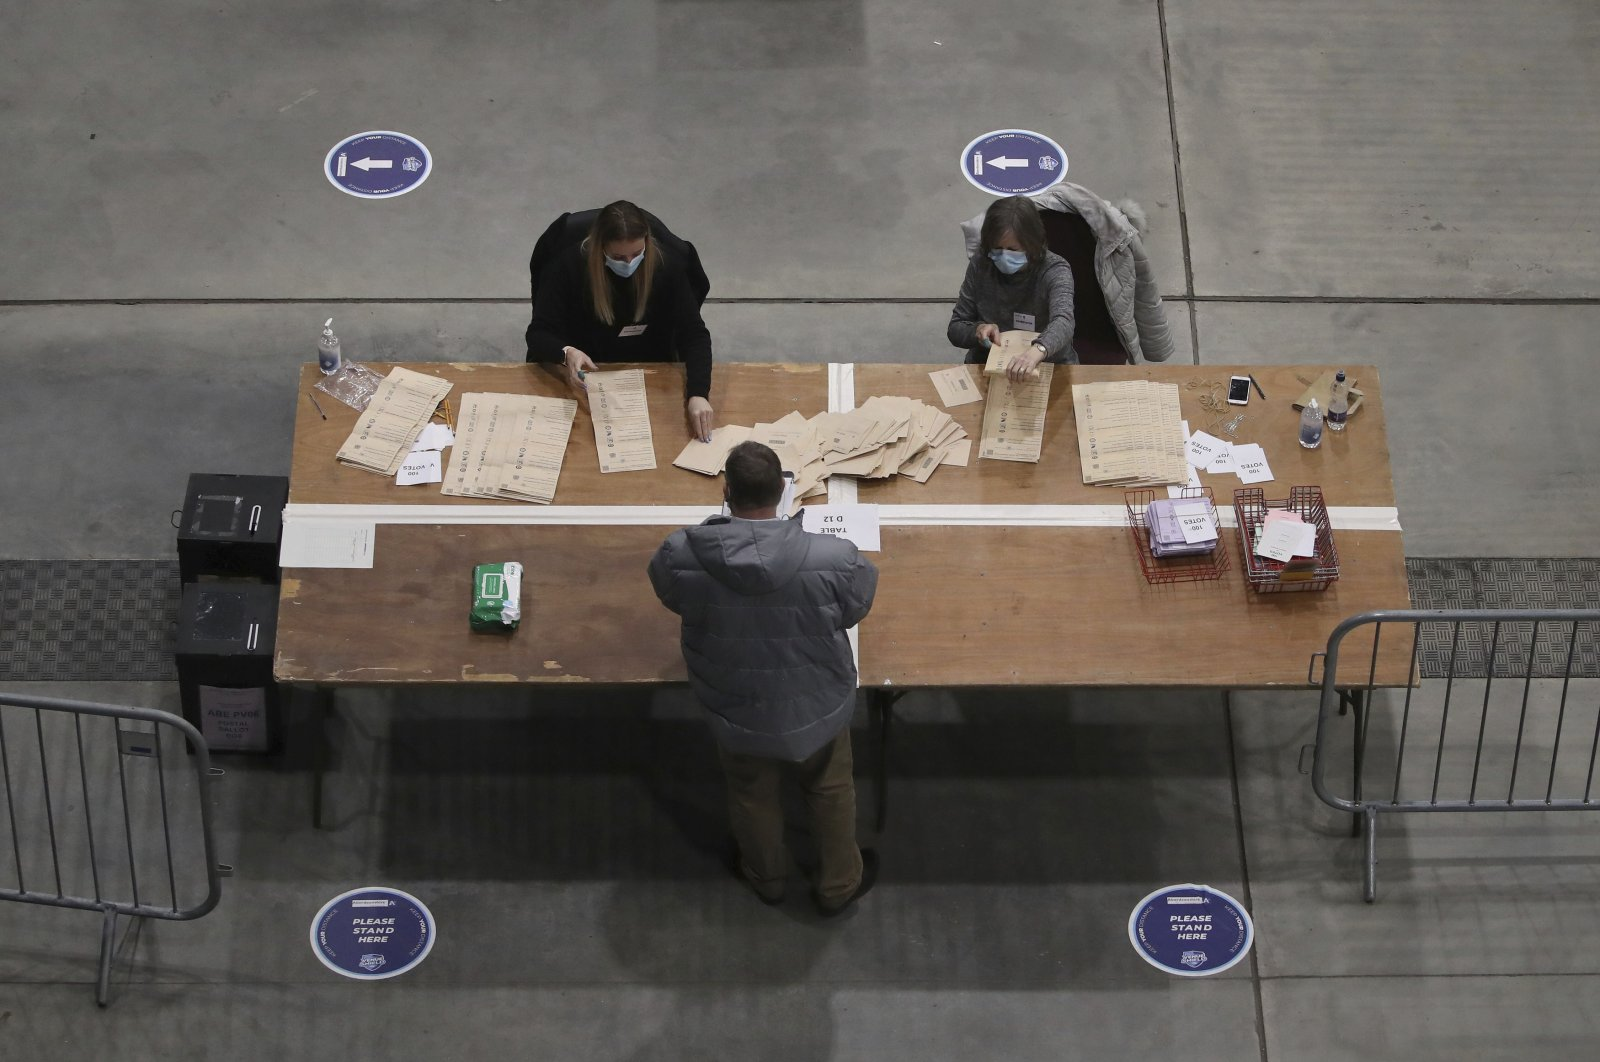 Ballots are counted for the Scottish Parliamentary Elections in Aberdeen, Scotland, the U.K., Friday May 7, 2021. (PA via AP)